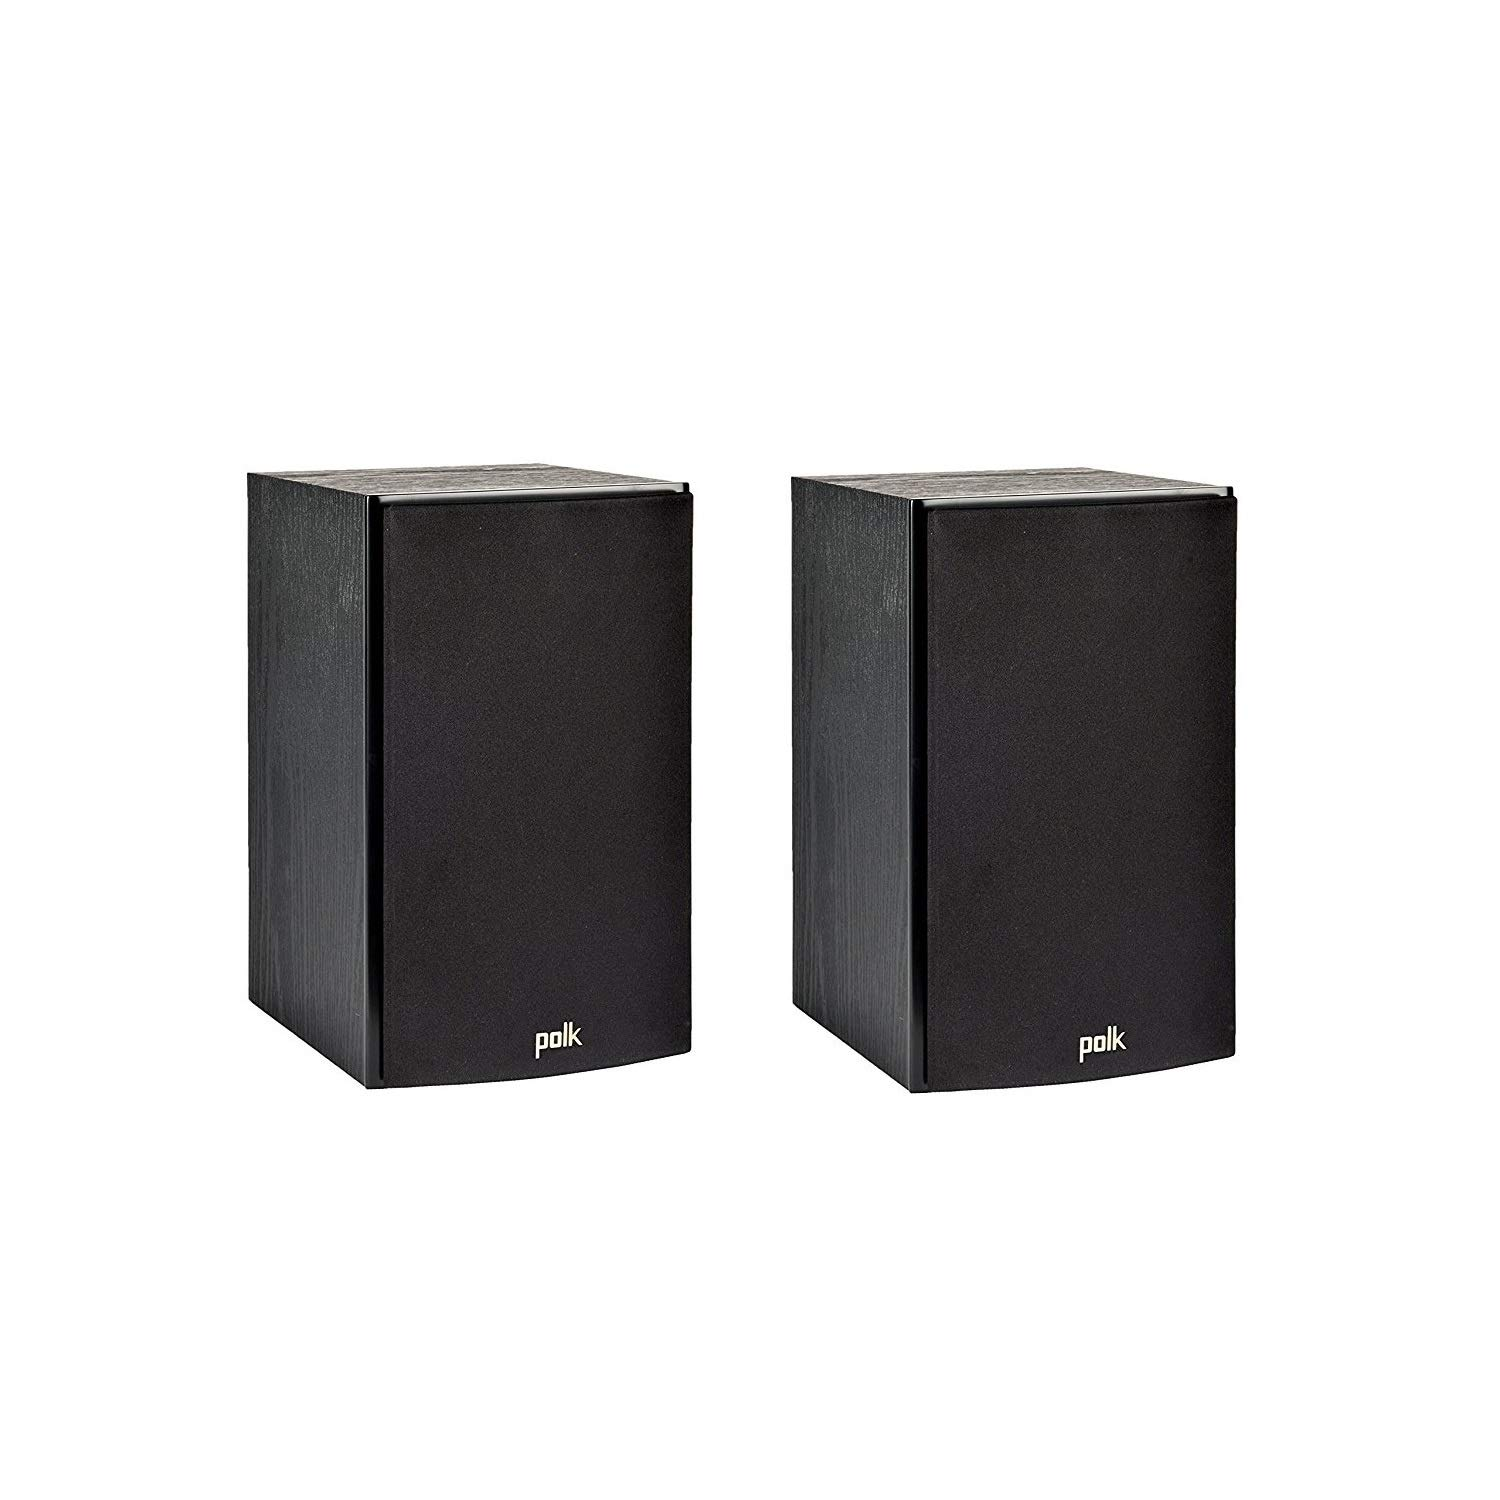 Polk Audio T15 100 Watt Home Theater Bookshelf Speakers (Pair) - Premium Sound at a Great Value | Dolby and DTS Surround | Wall-Mountable by Polk Audio